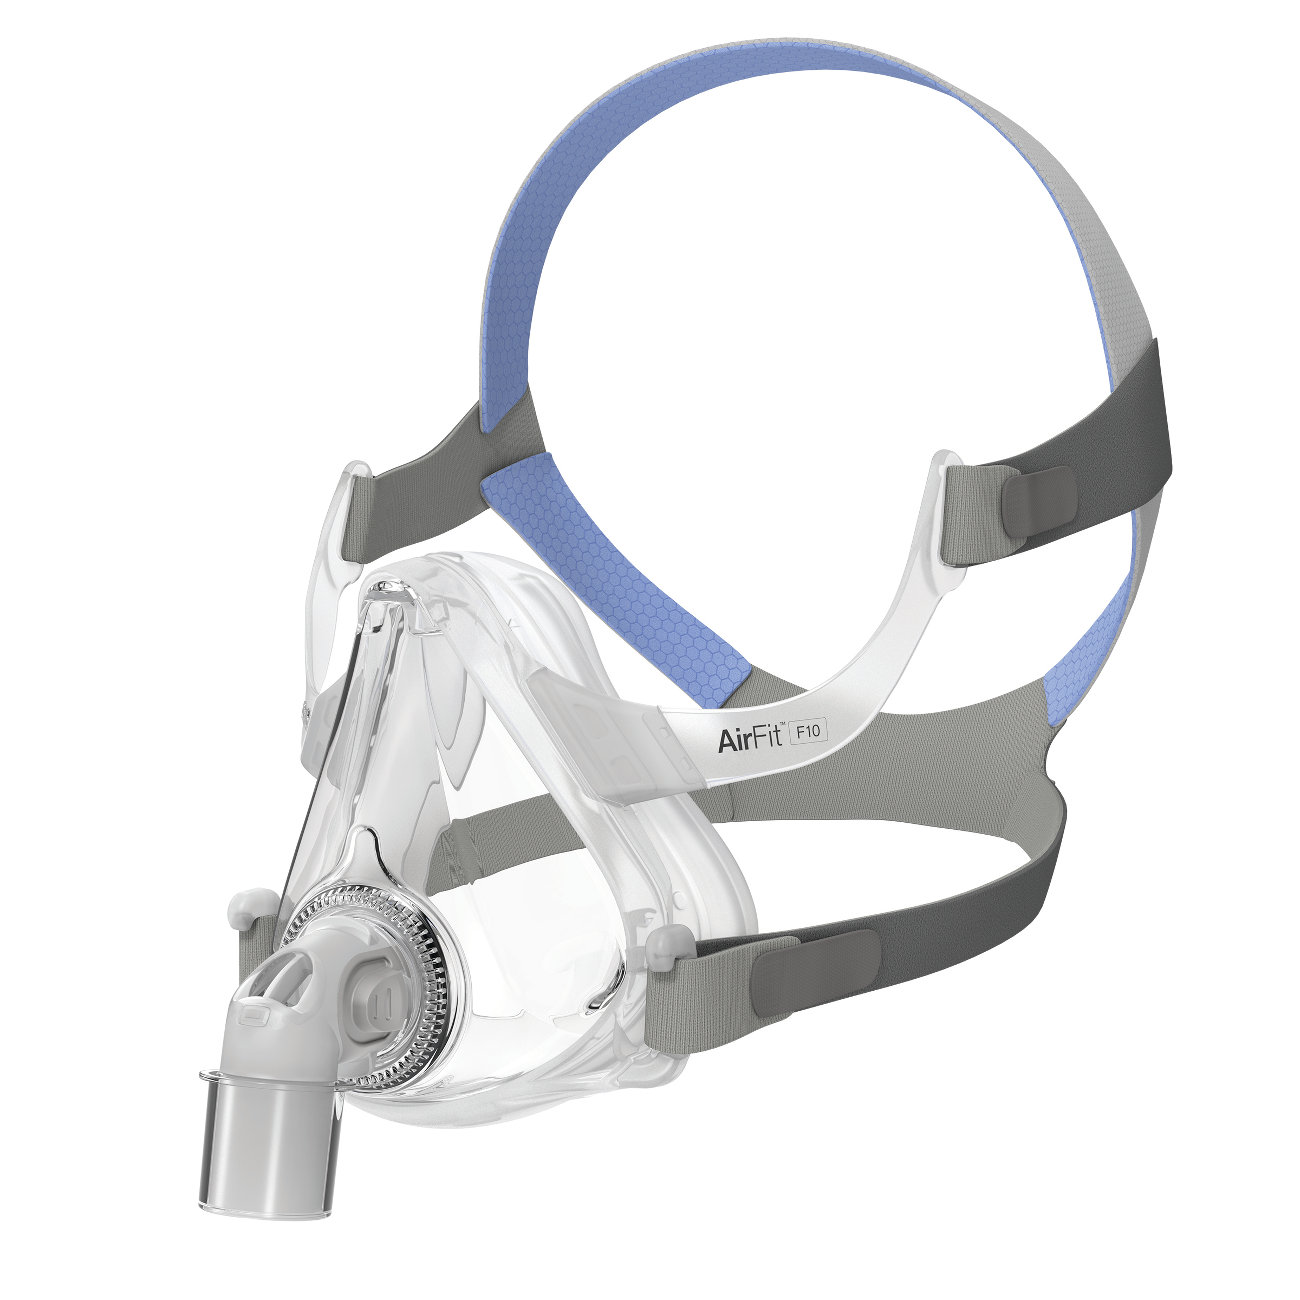 AirFit F10 Full Face CPAP Mask - ResMed